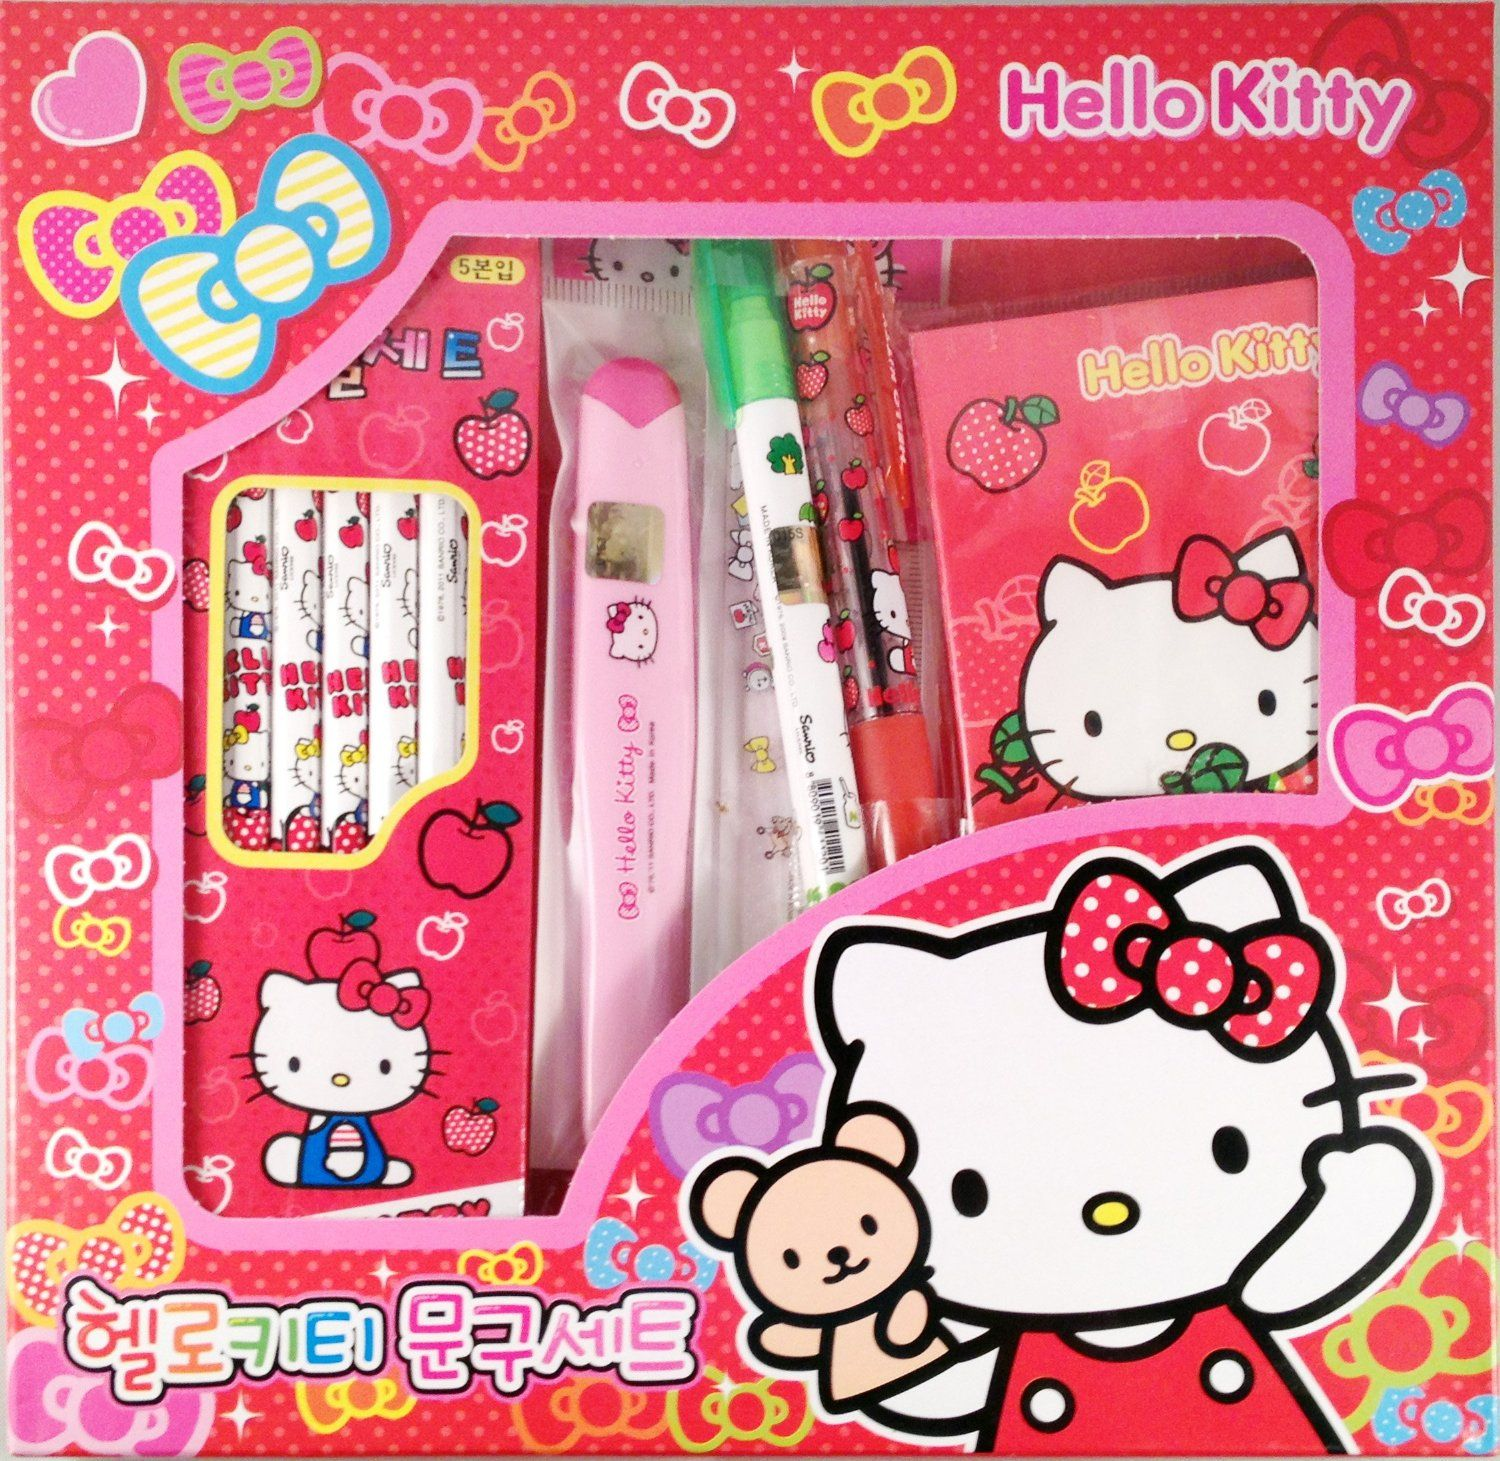 Sanrio Hello Kitty Stationery Set Pencil Ruler